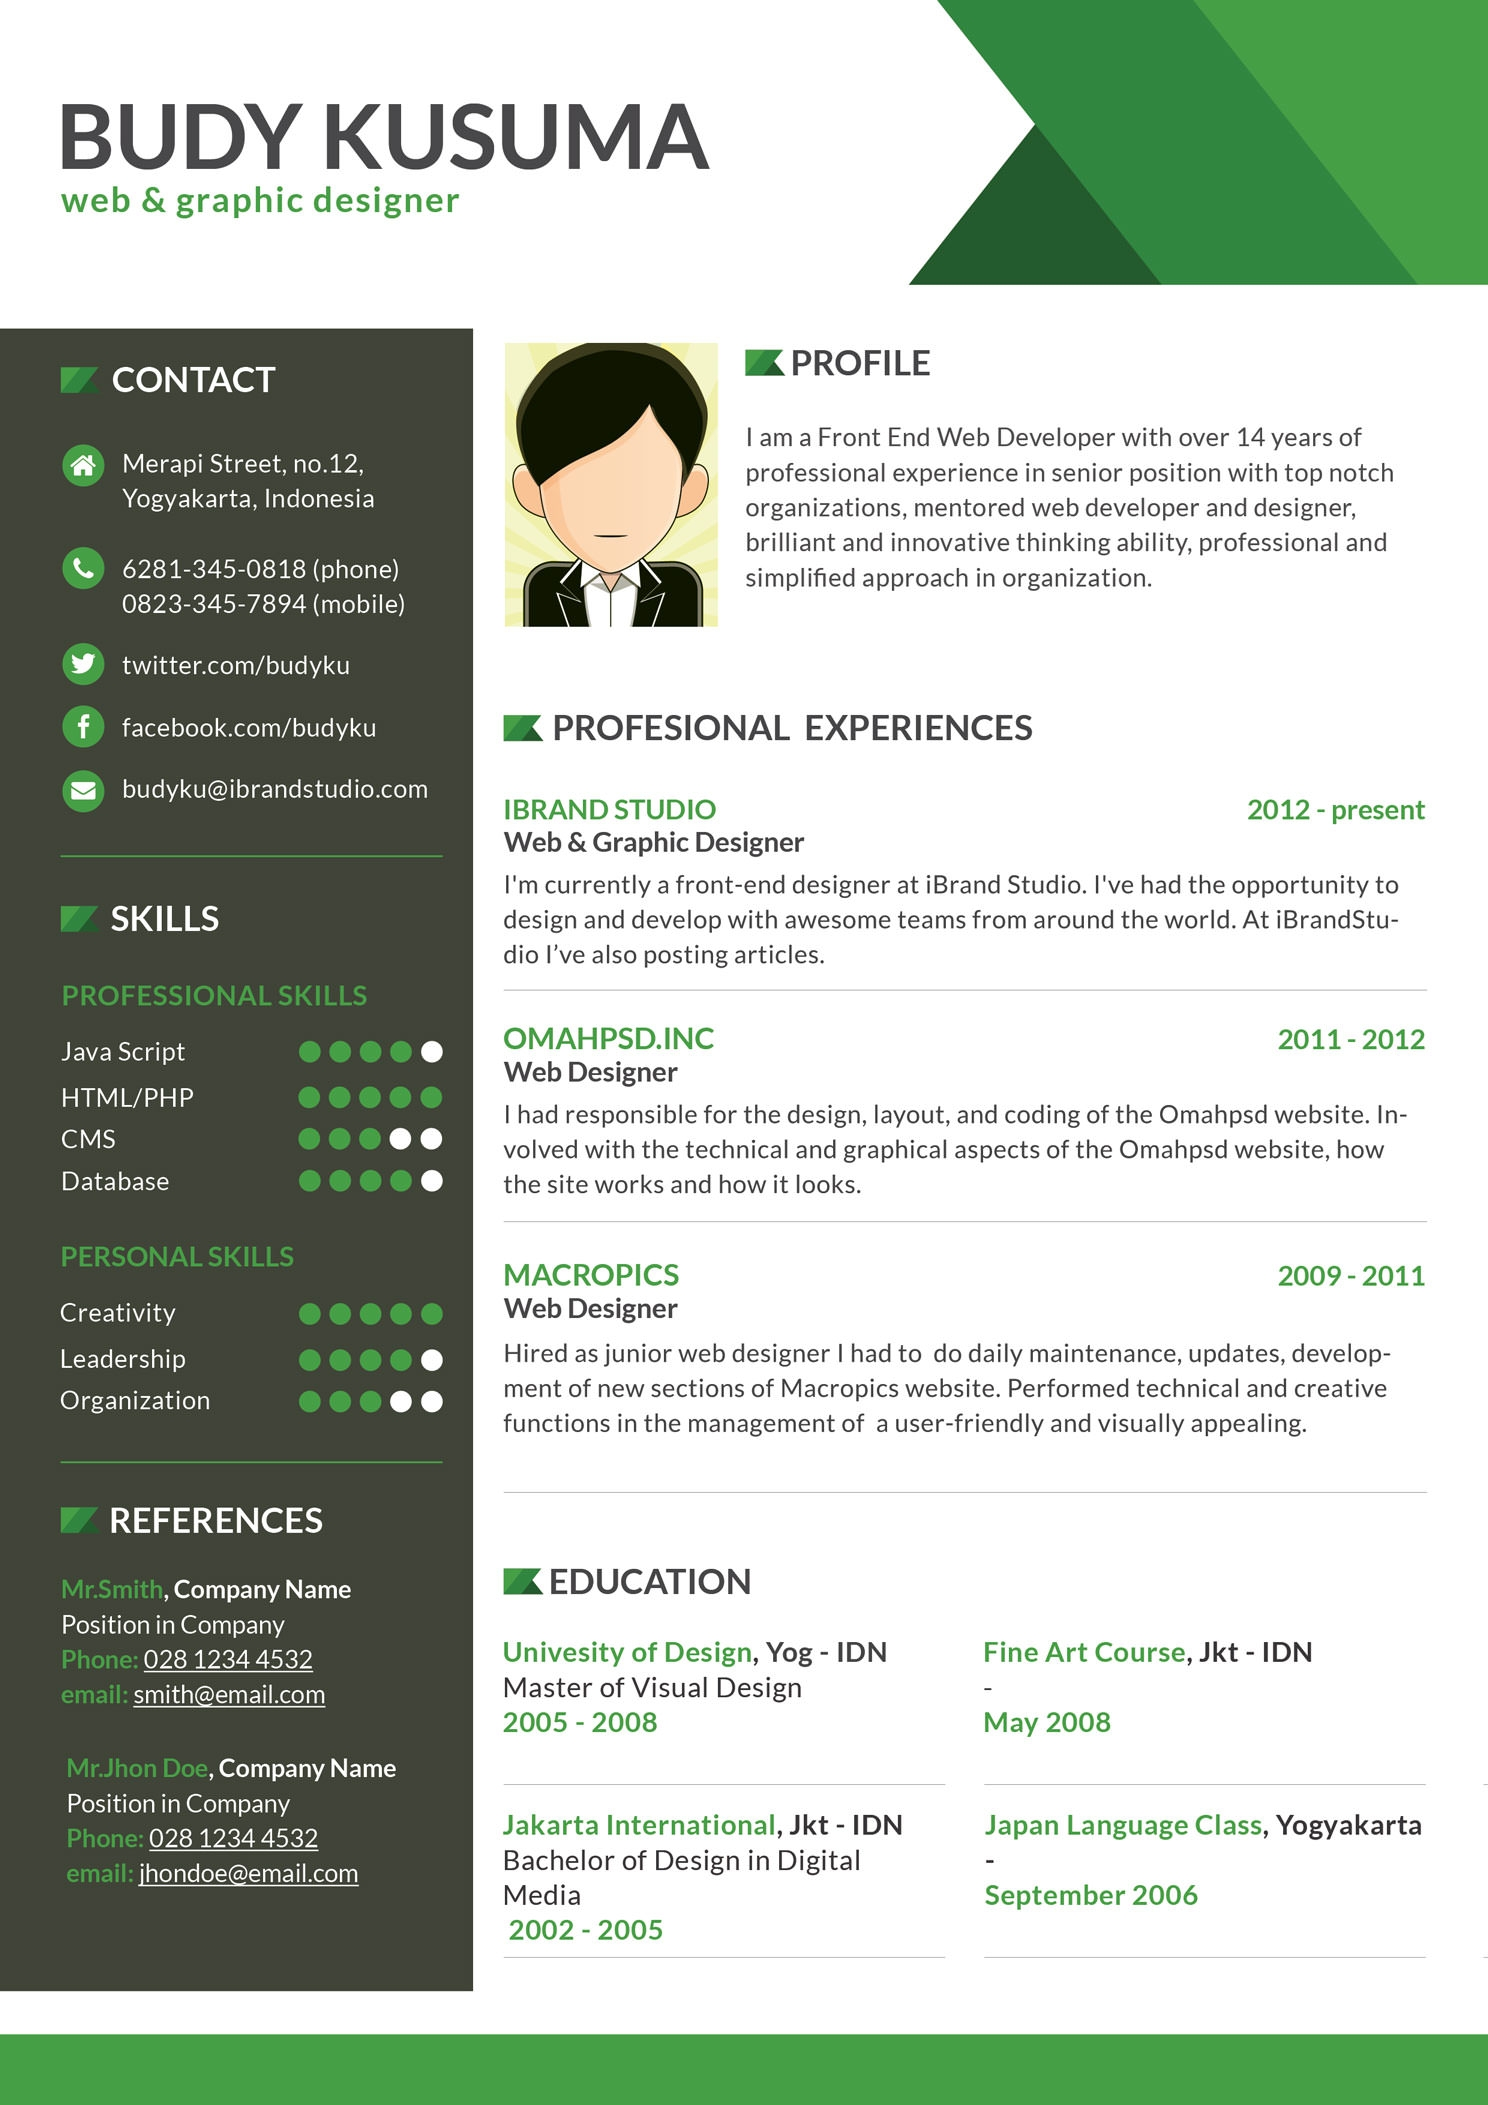 ... resume builder adebfdbdebee adebfdbdebee free builder flasher resume